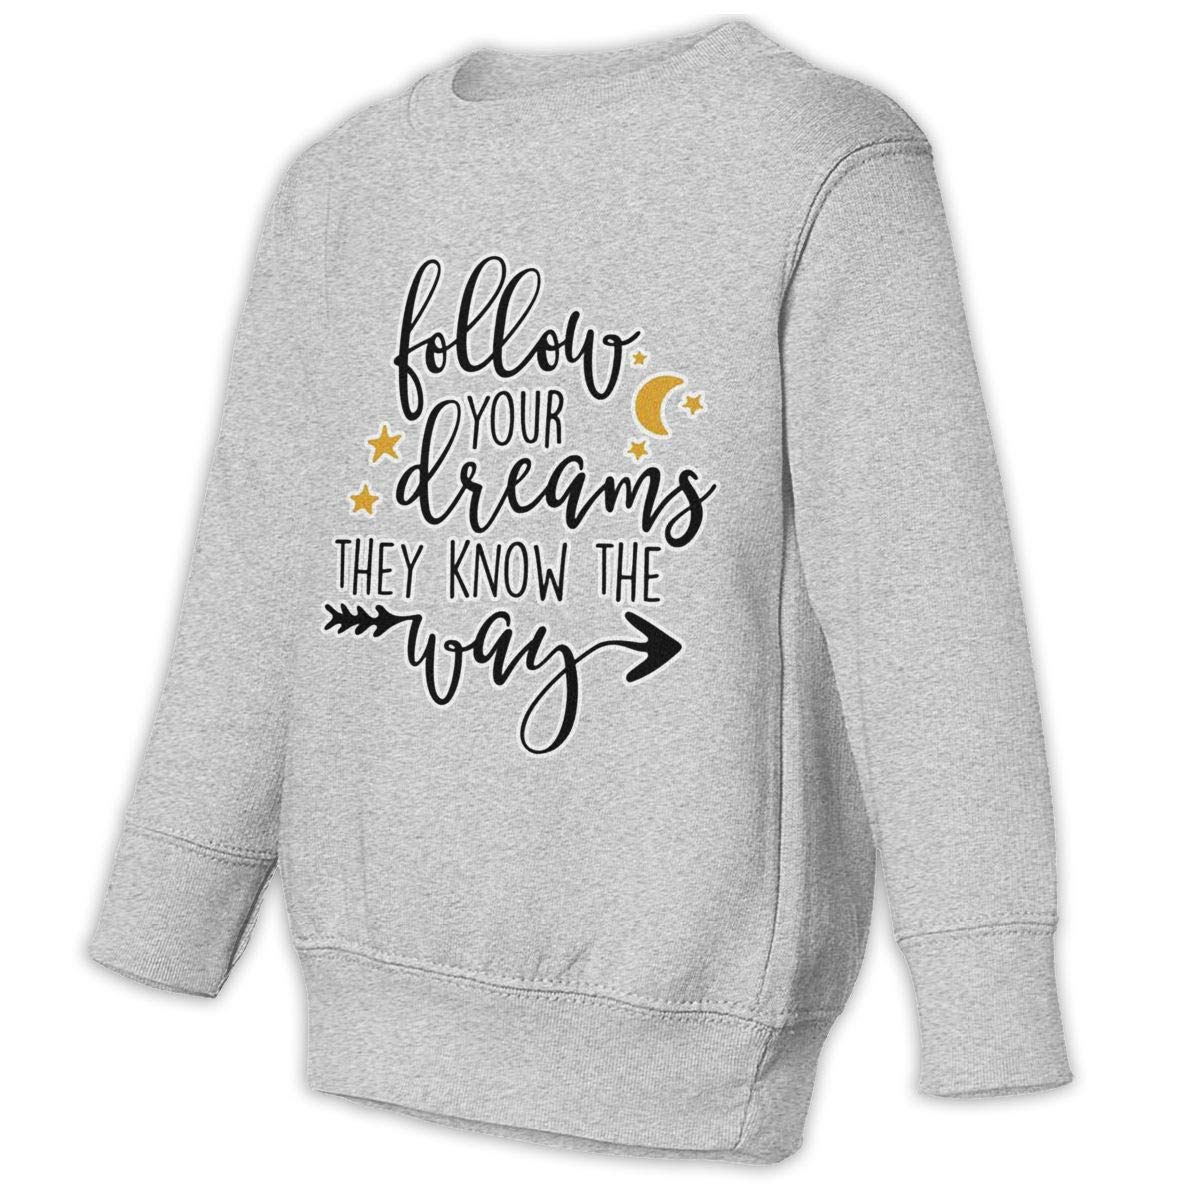 NMDJC CCQ Follow Your Dreams Baby Sweatshirt Lovely Kids Hoodies Cotton Outfits